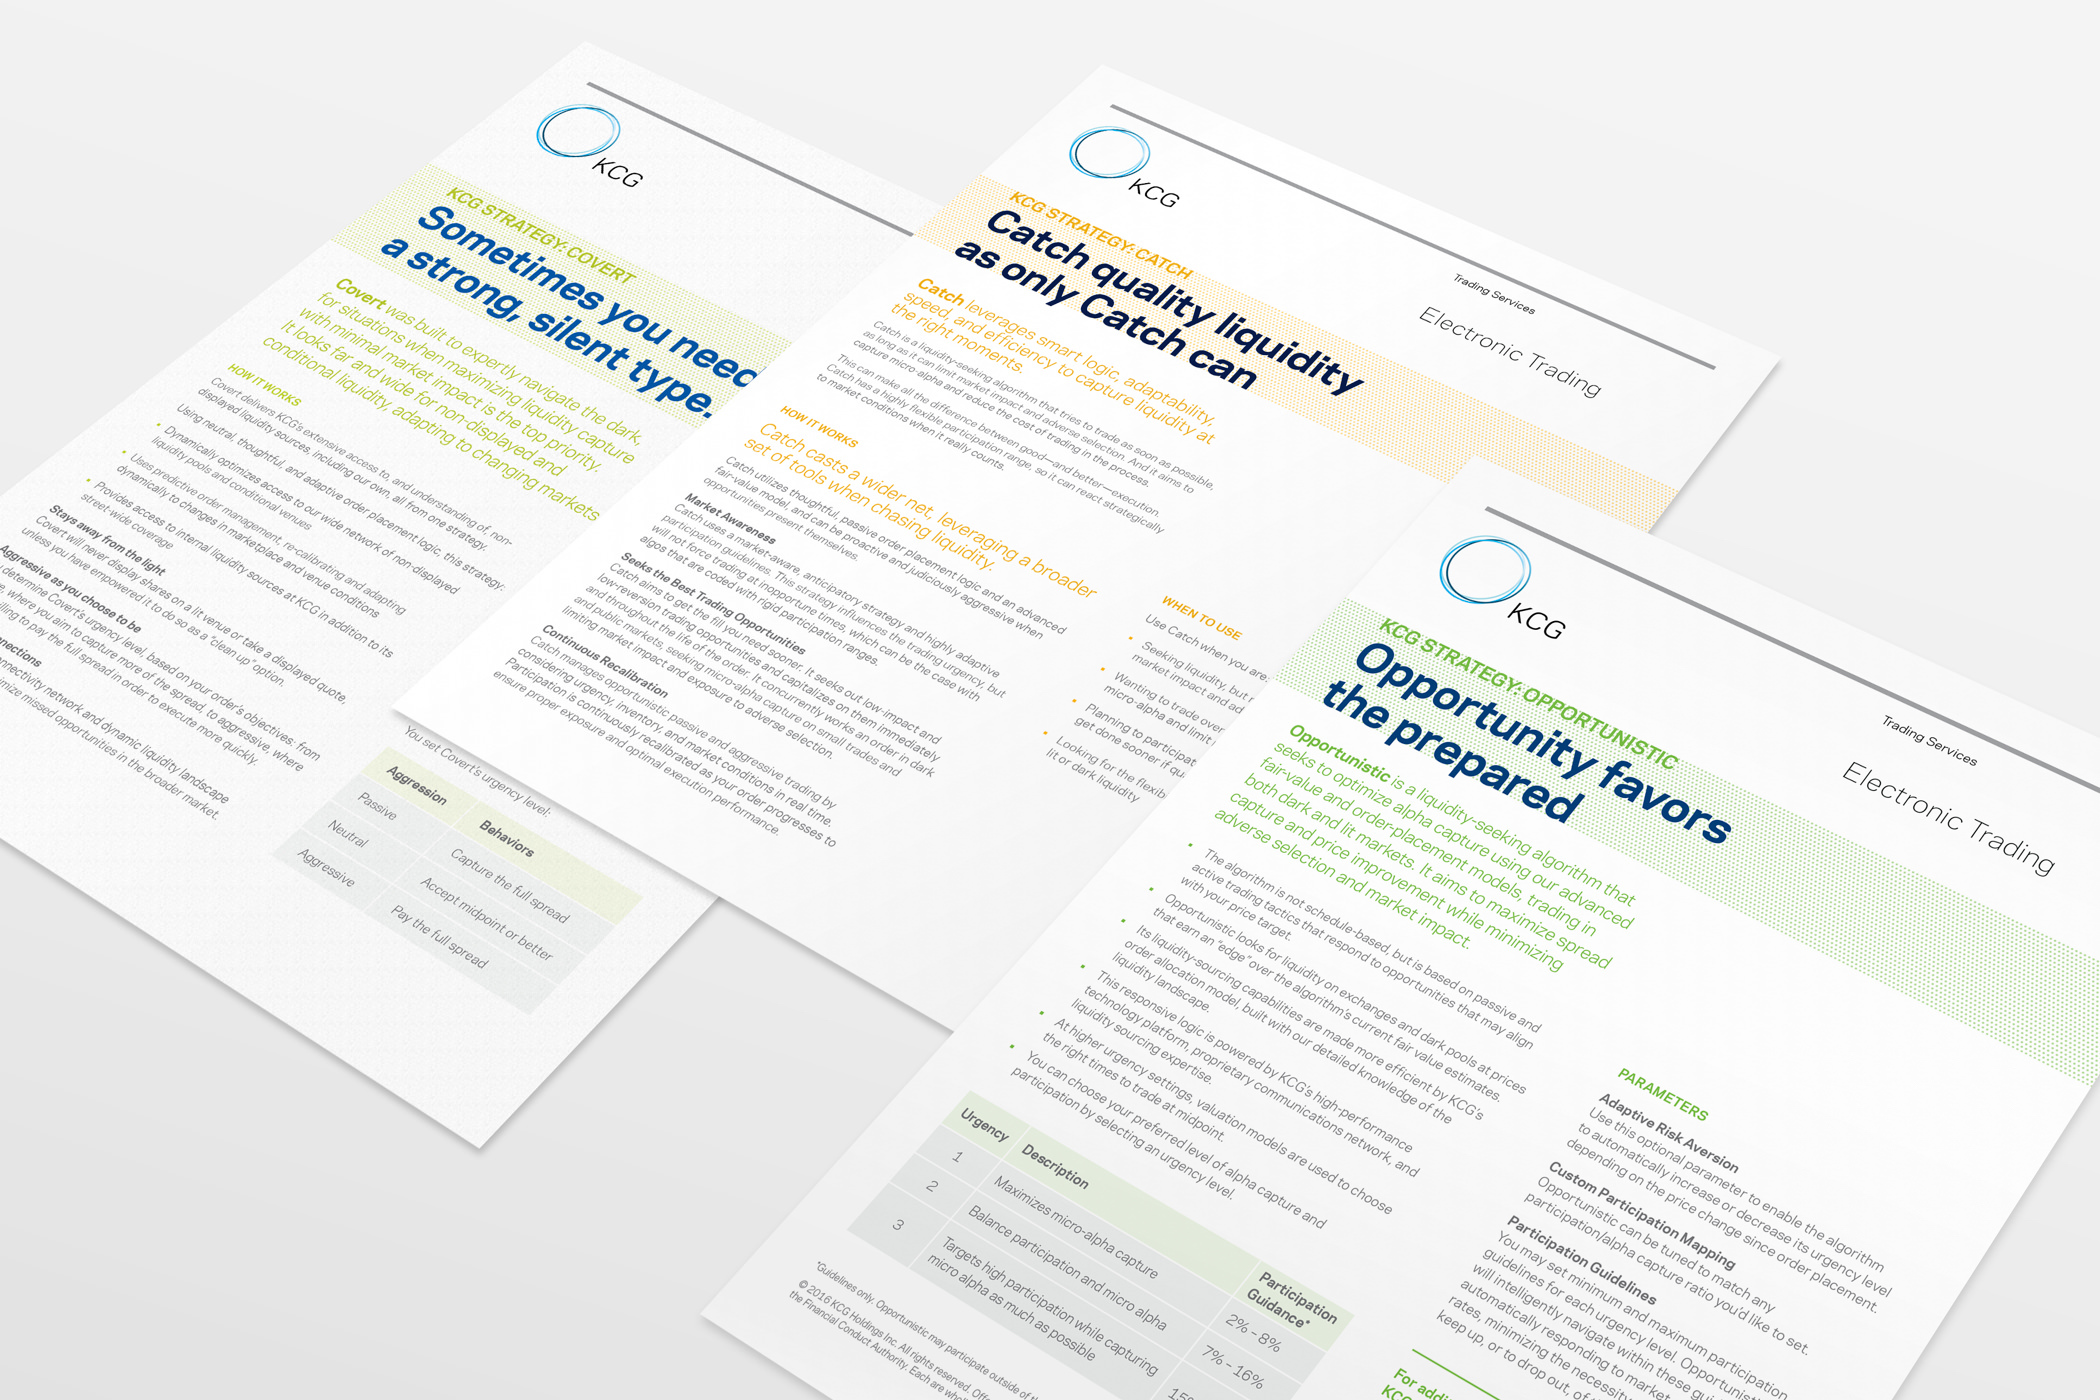 Three KCG electronic trading product sales sheets with text and charts laid out on a work surface.